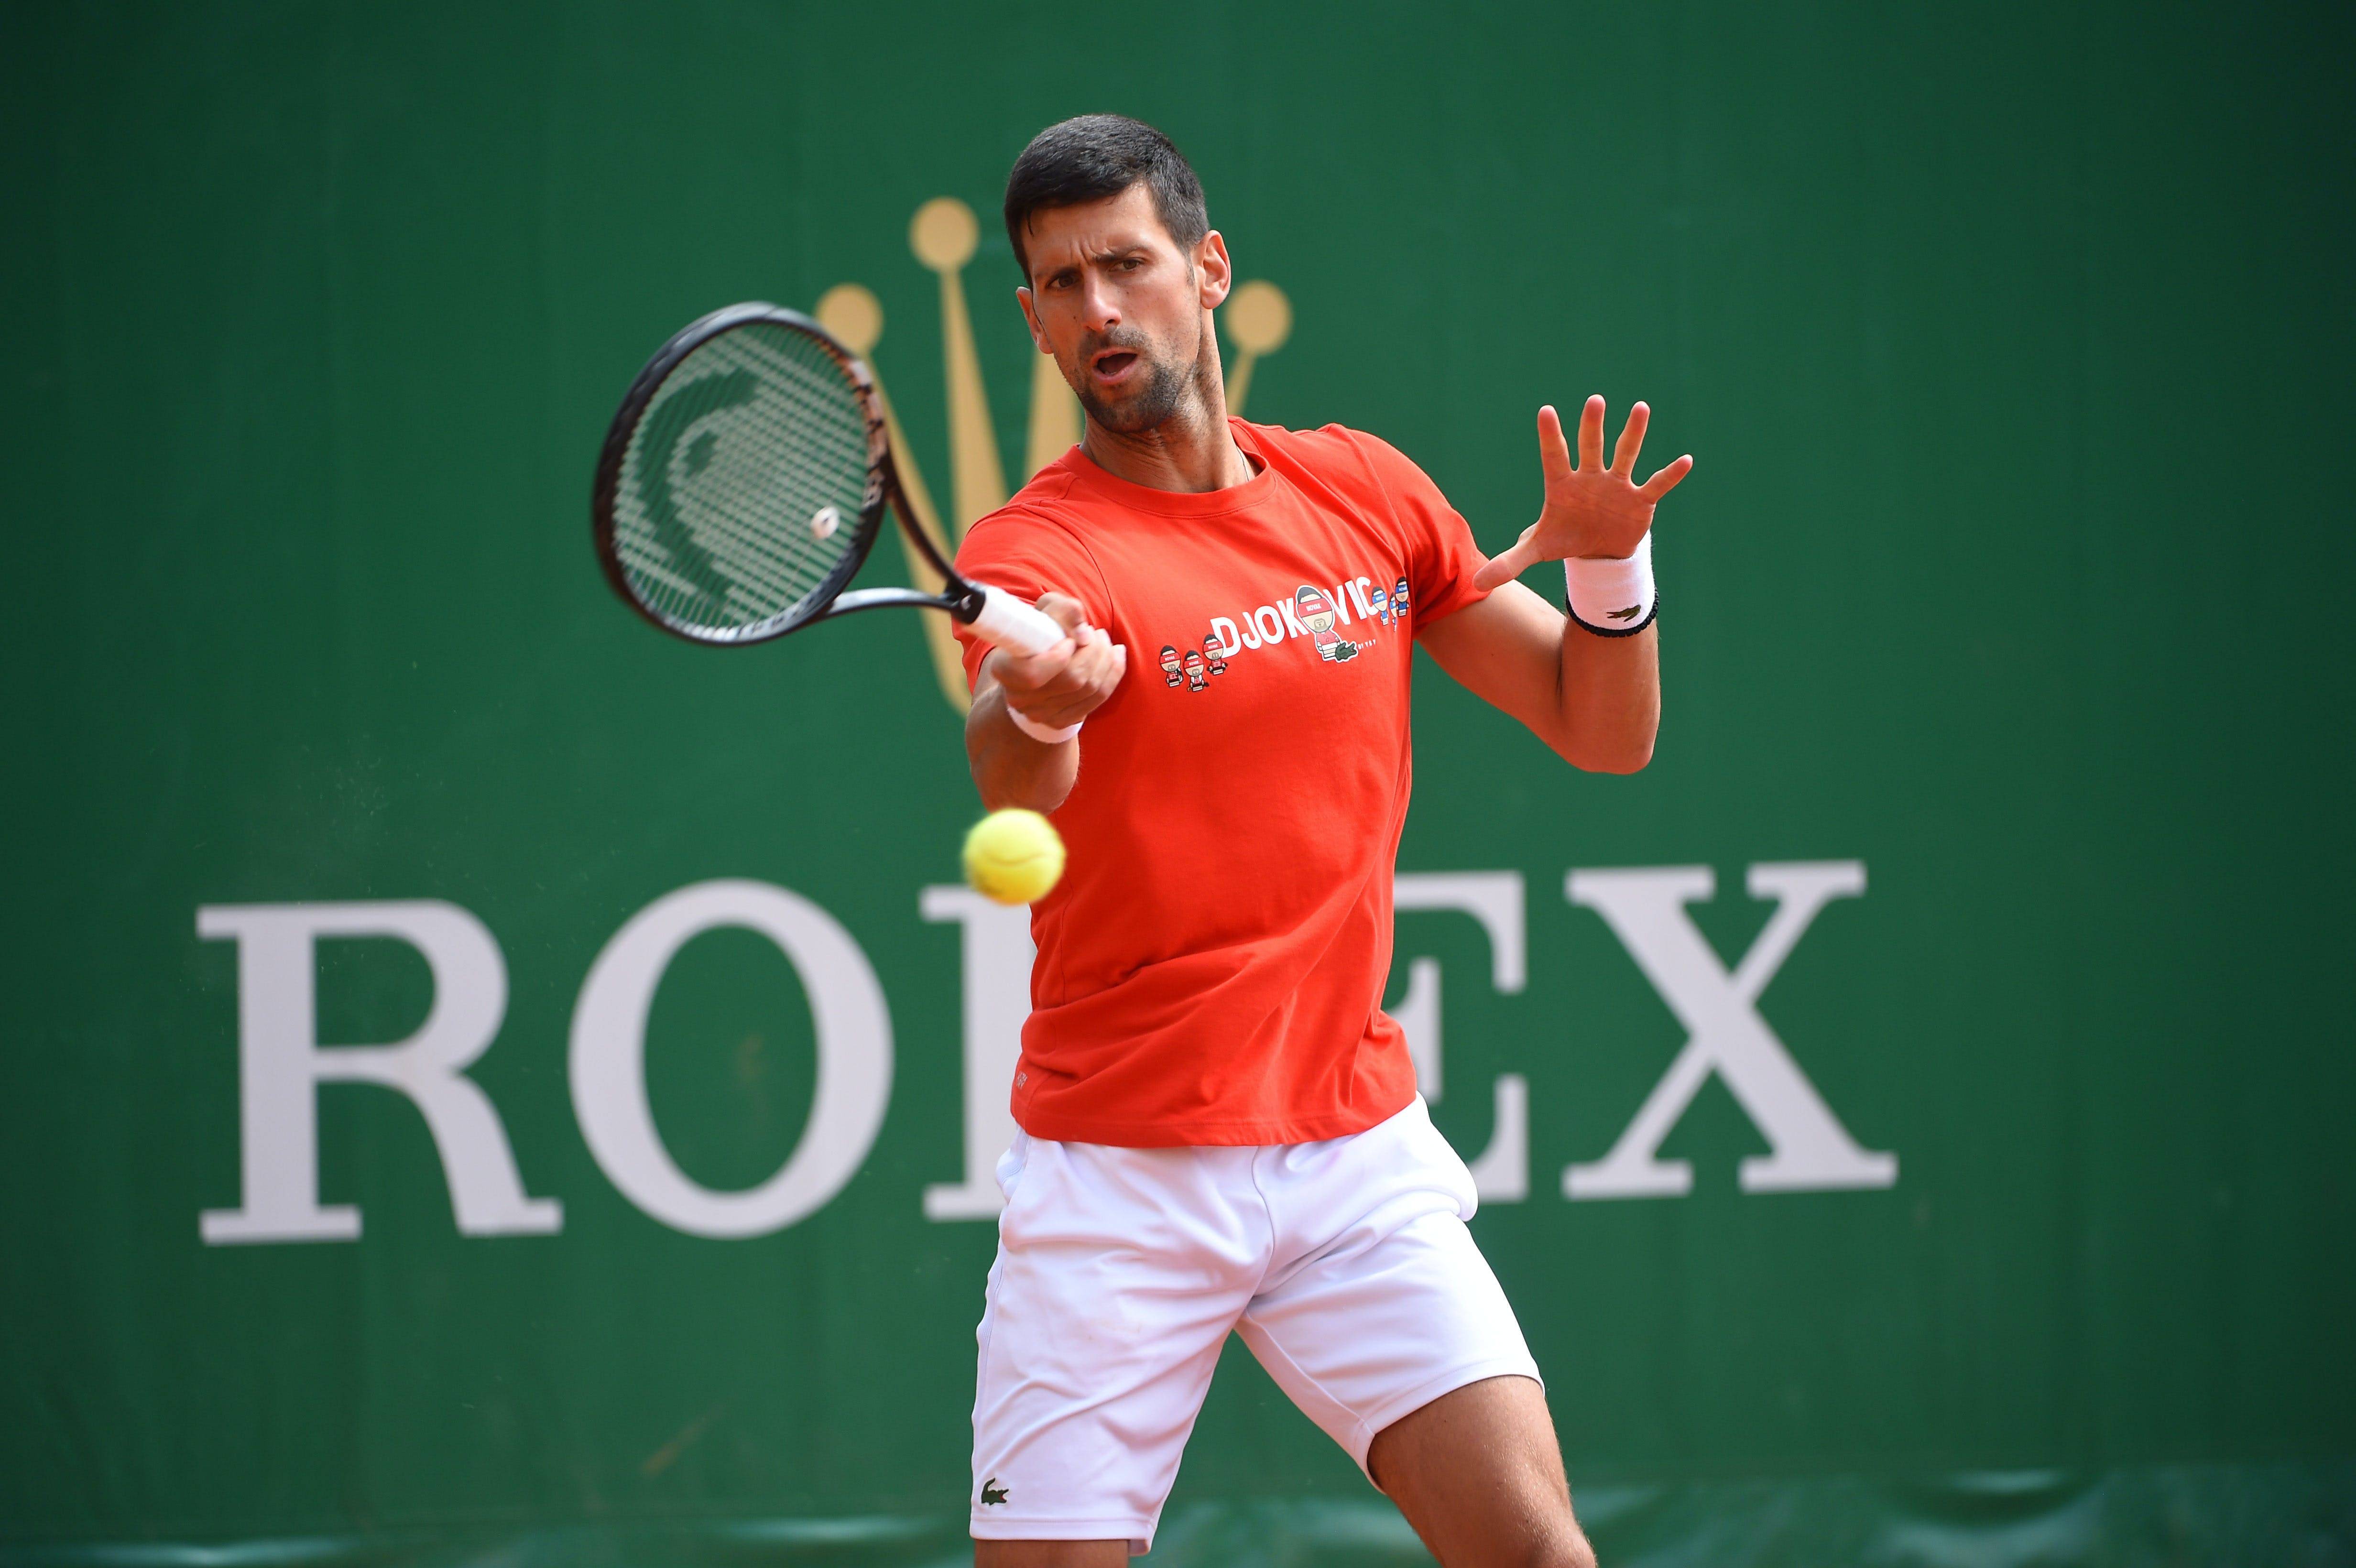 Novak Djokovic at practice during Rolex Monte-Carlo Masters 2021